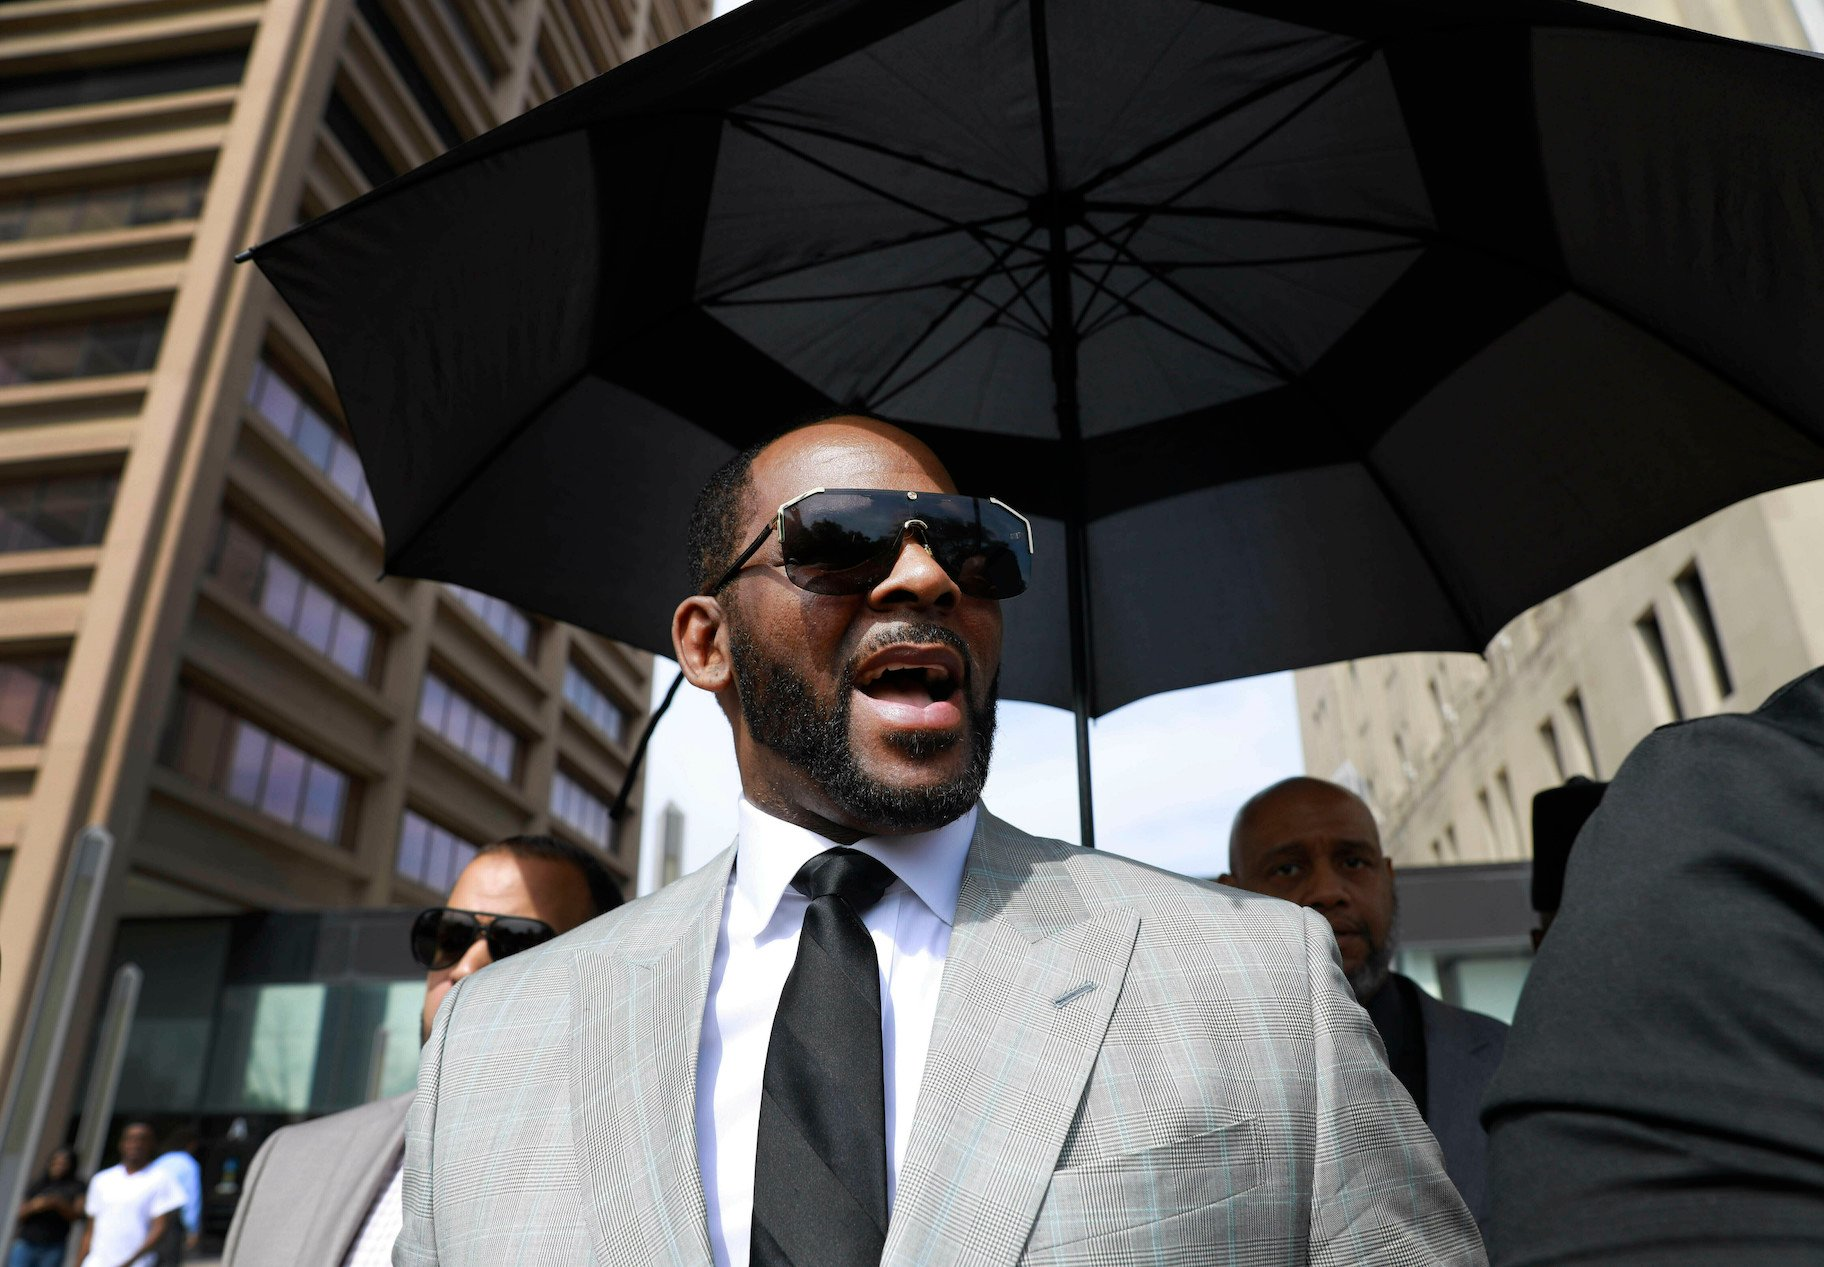 In this June 6, 2019 file photo, musician R. Kelly departs the Leighton Criminal Court building after pleading not guilty to 11 additional sex-related charges in Chicago. A U.S. Attorney's office spokesman says Kelly was arrested Thursday night, July 11 on federal sex-crime charges in Chicago. (AP Photo/Amr Alfiky, File)